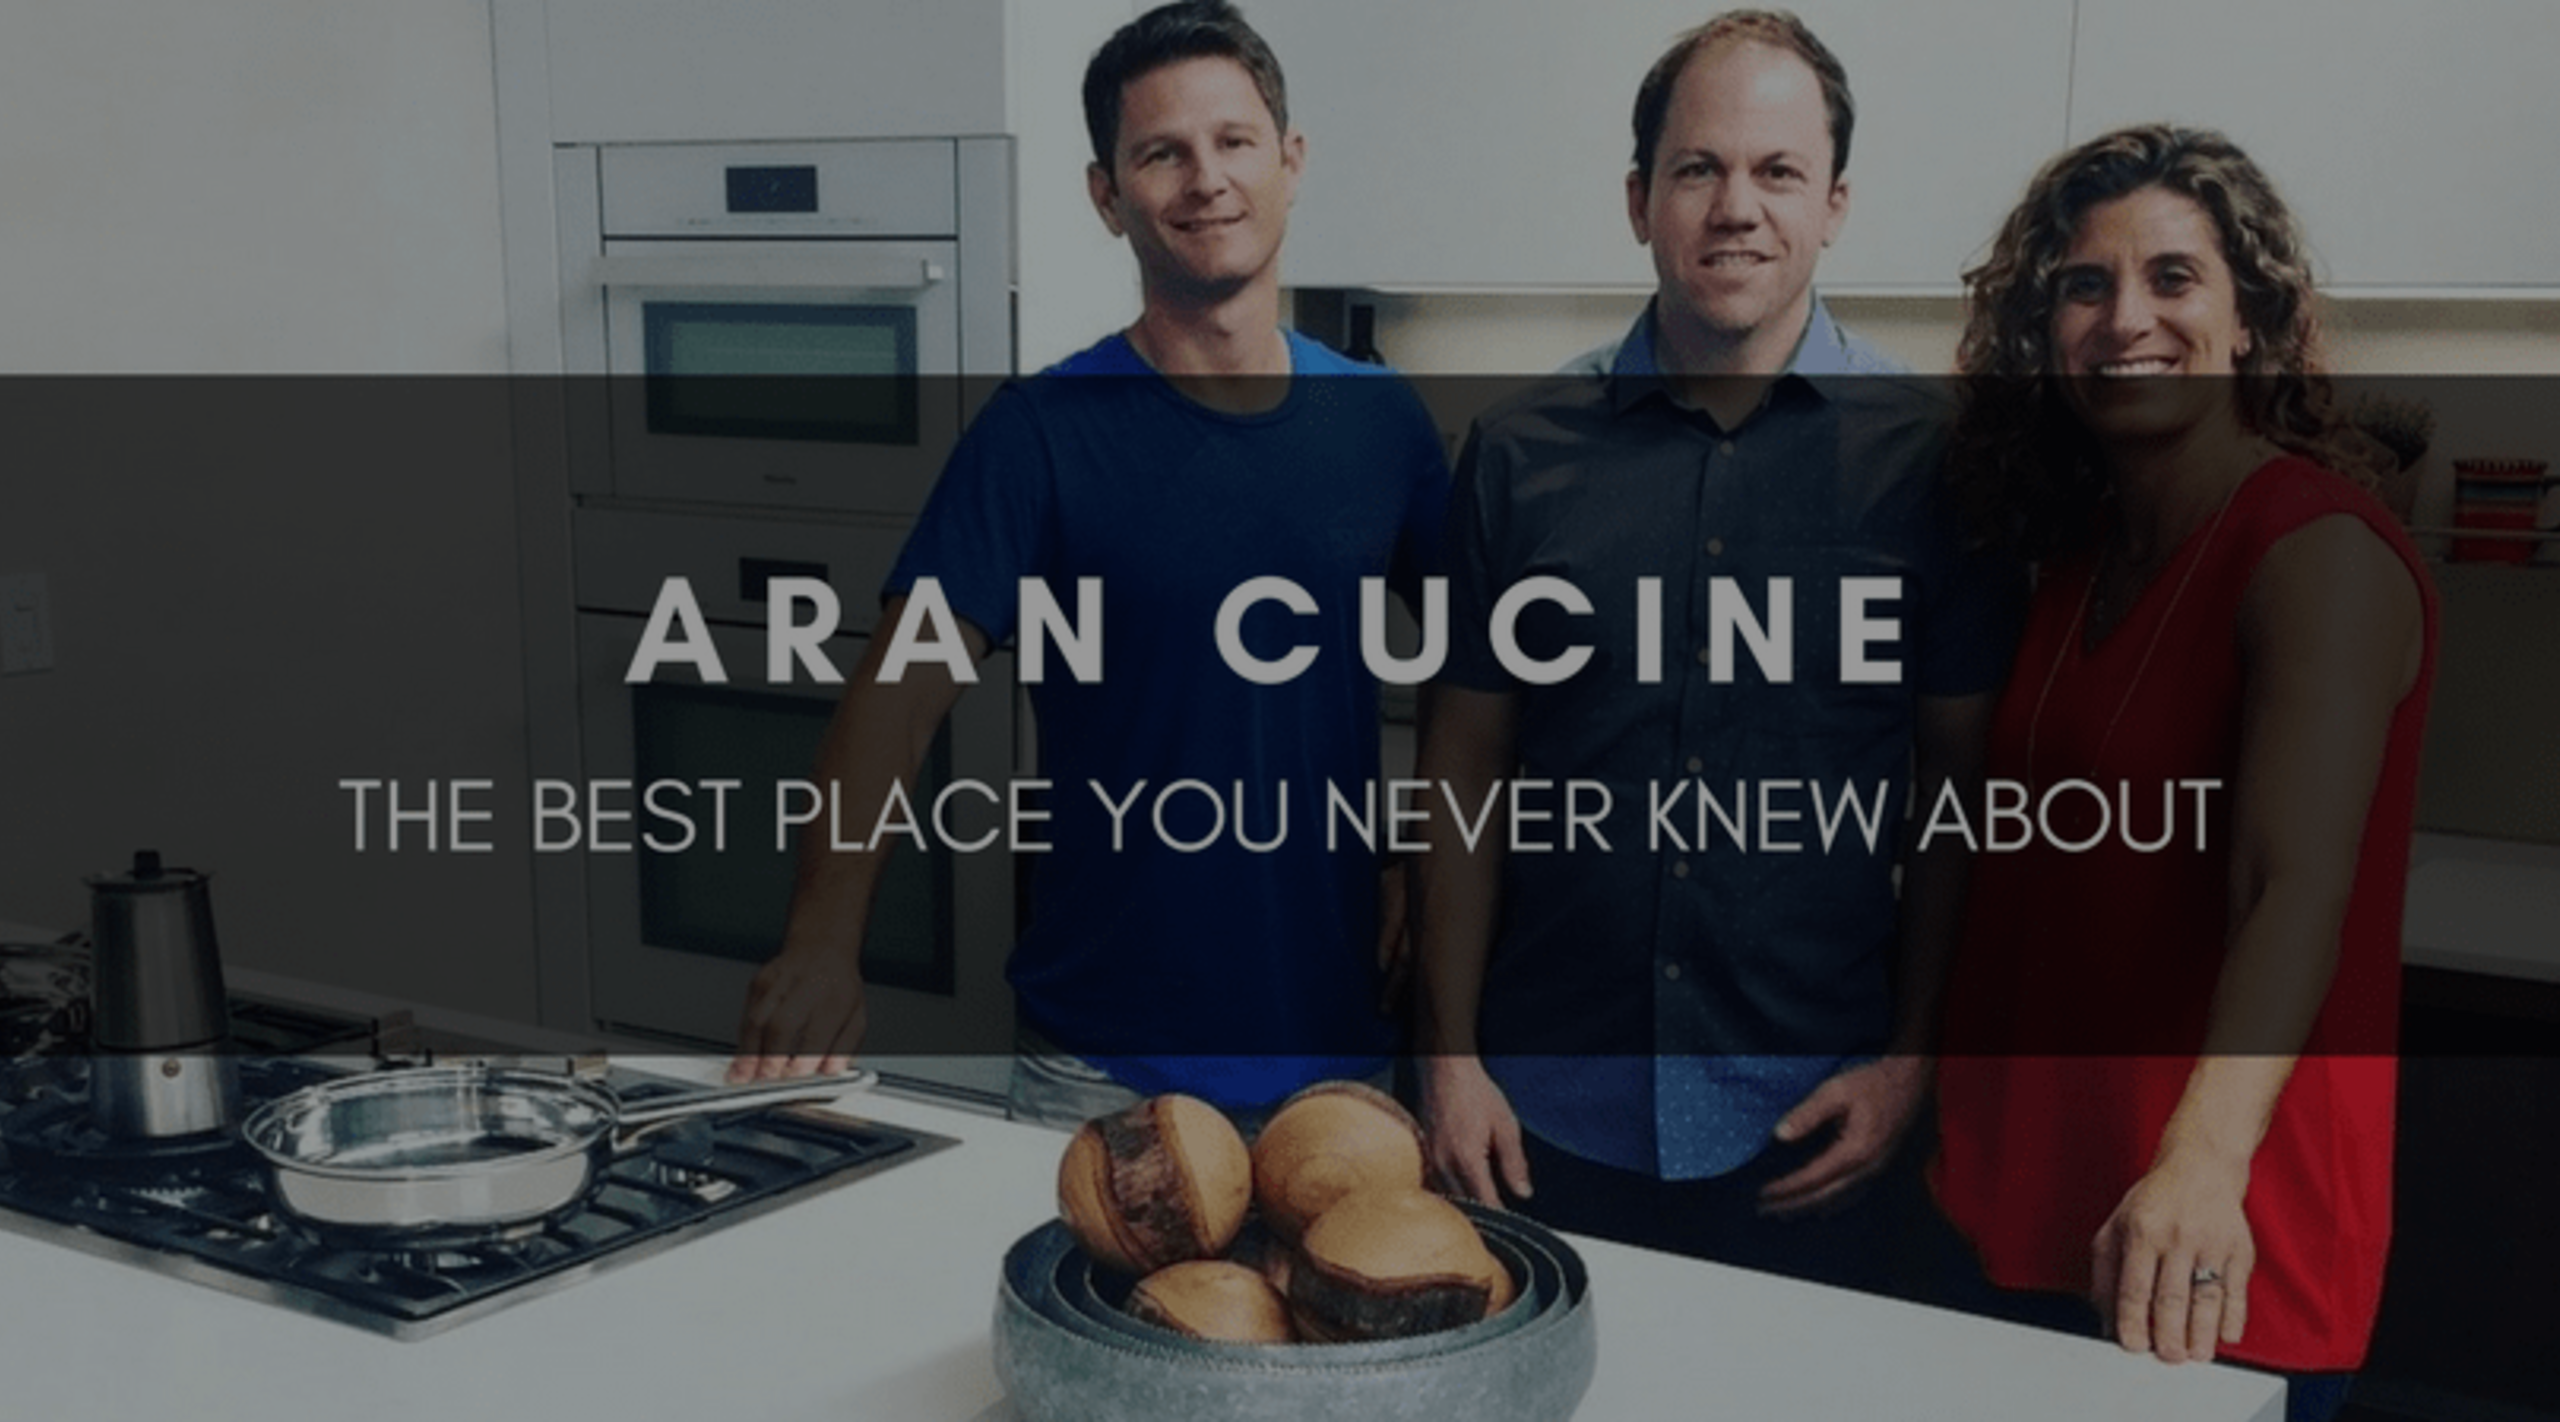 ARAN CUCINE | THE BEST PLACE YOU NEVER KNEW ABOUT